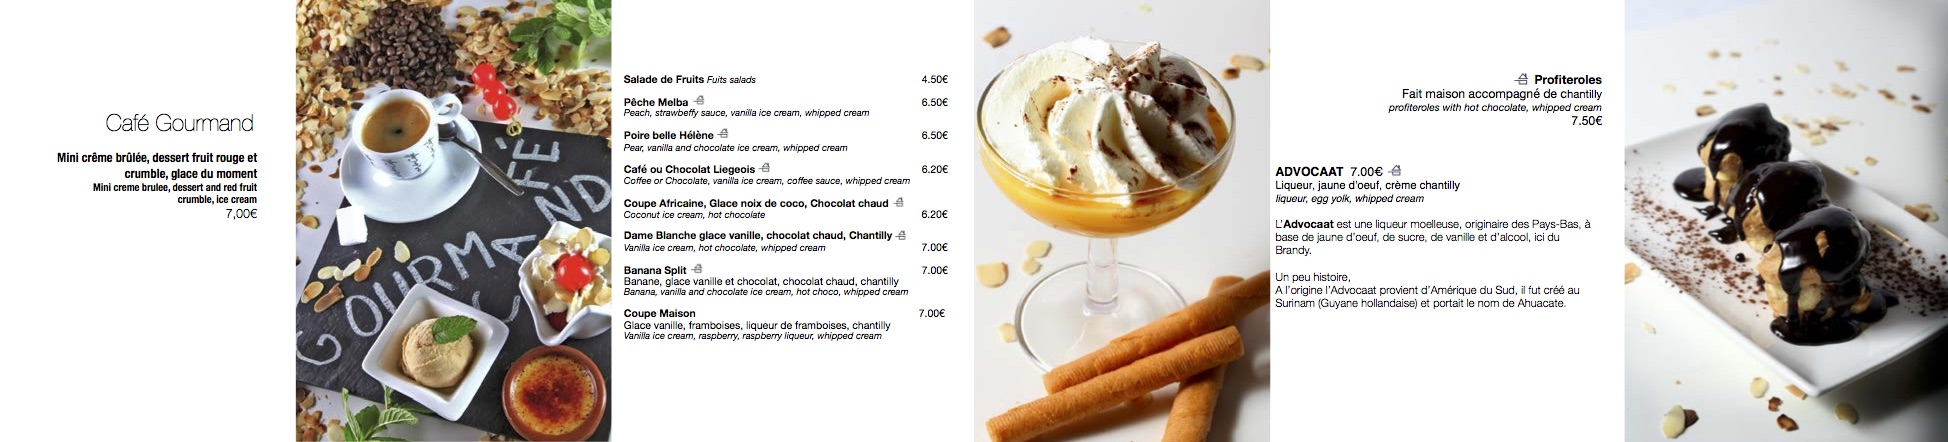 Creperie-tulipes-menu2016web12